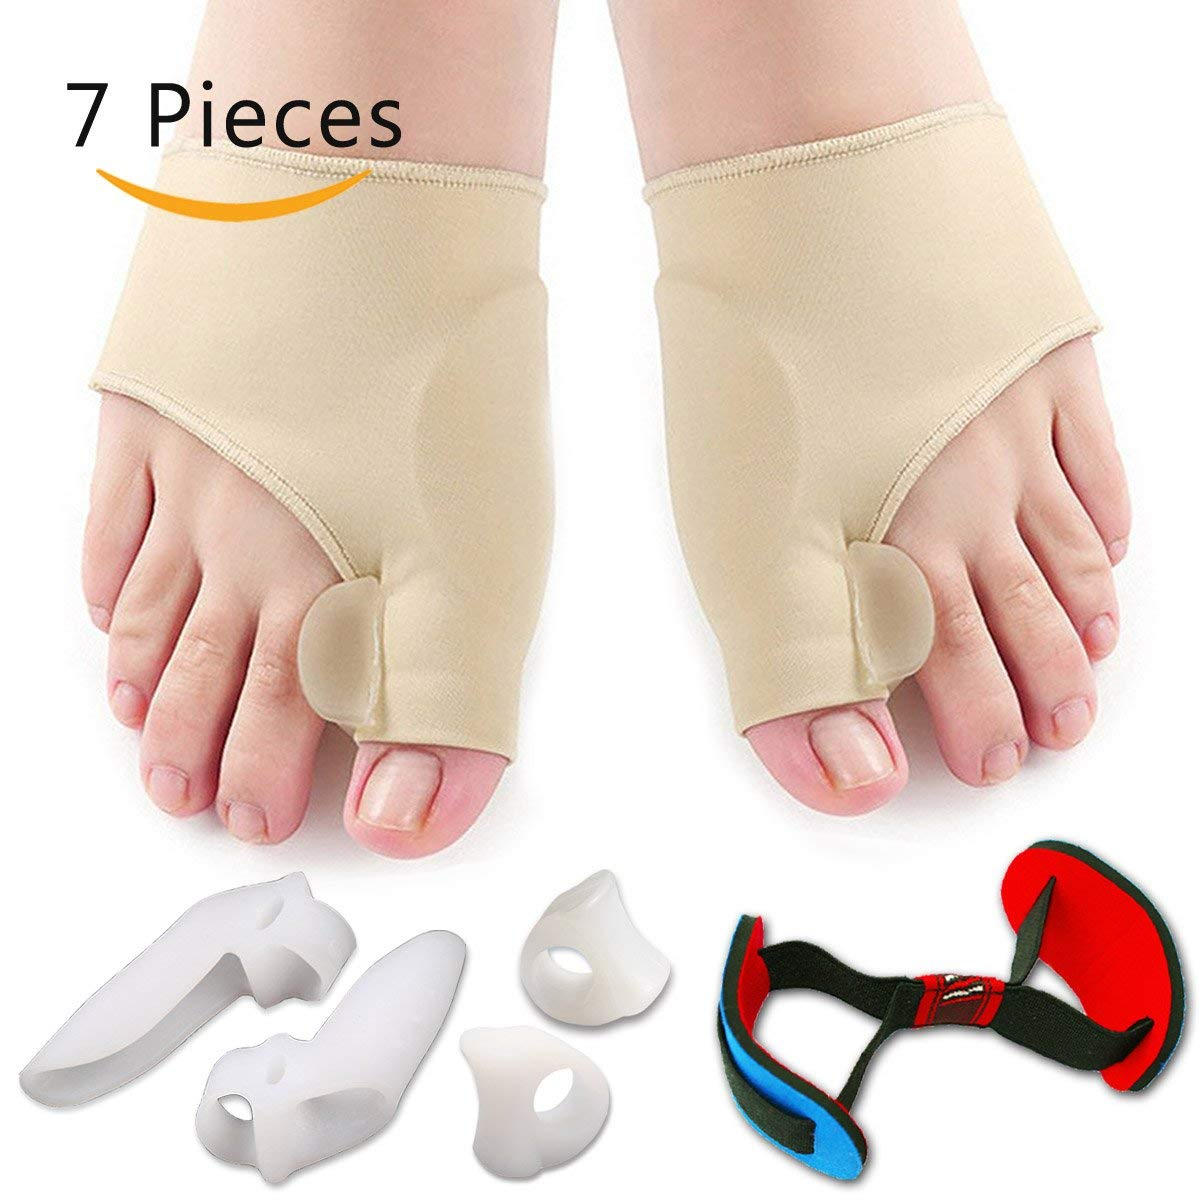 Bunion Corrector and the Bunion Relief Sleeve